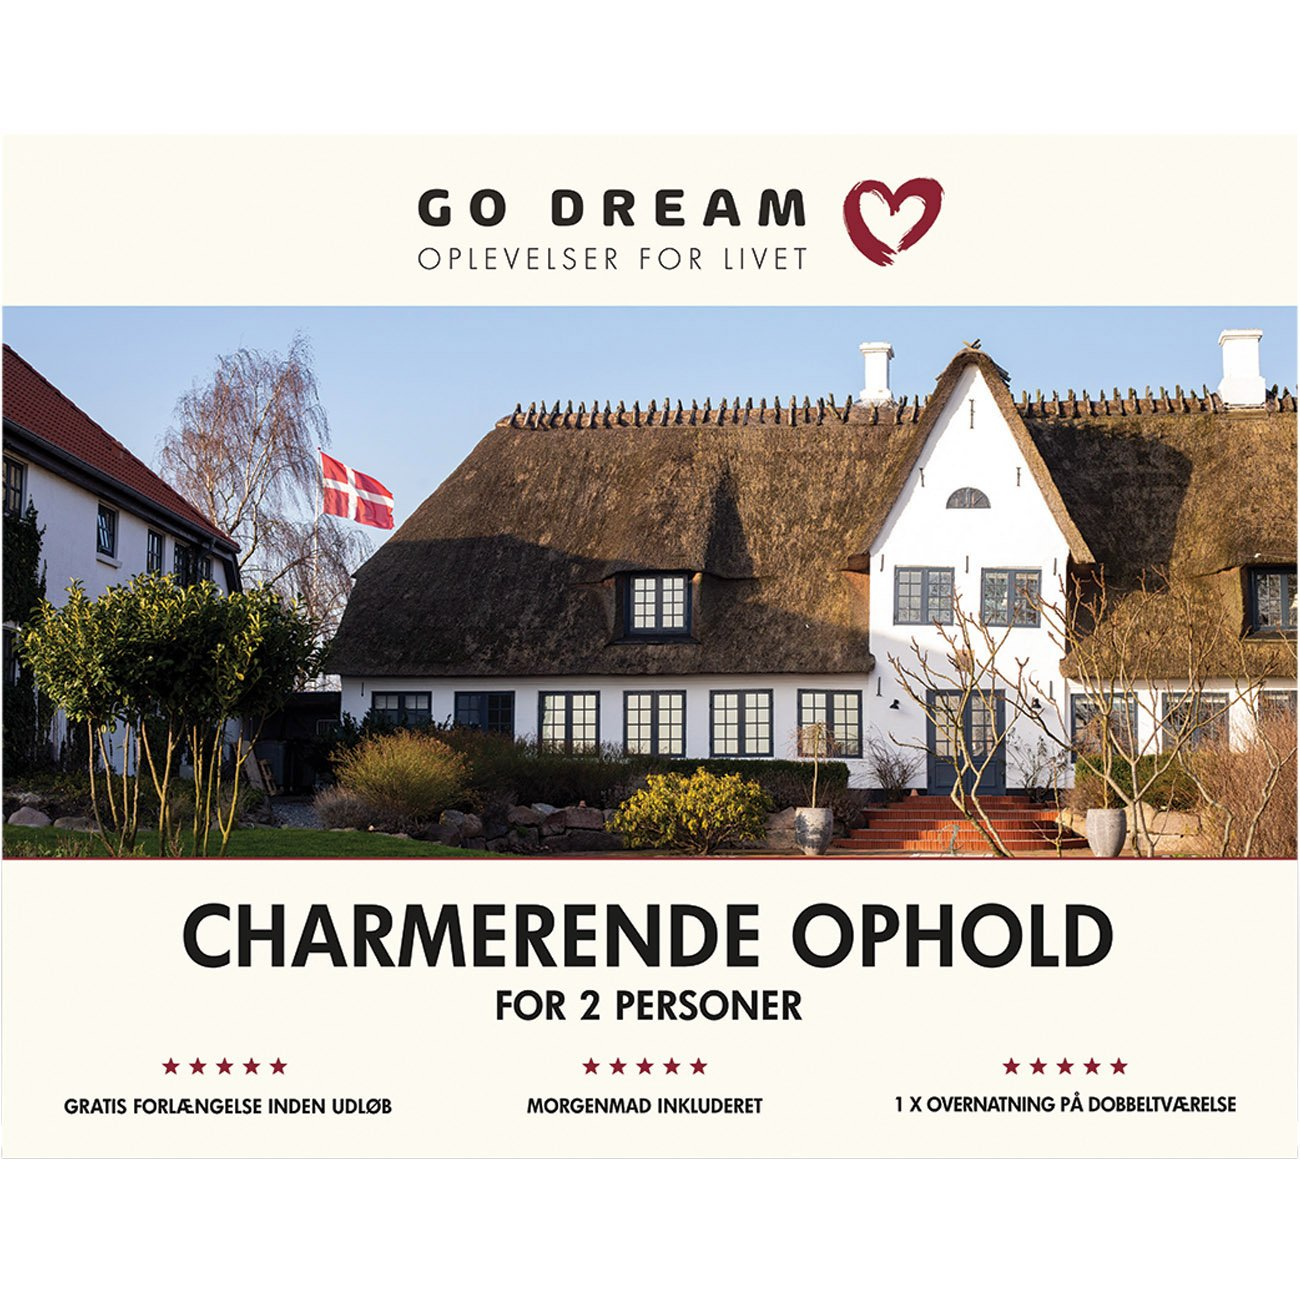 Go Dream Charmerende ophold for 2